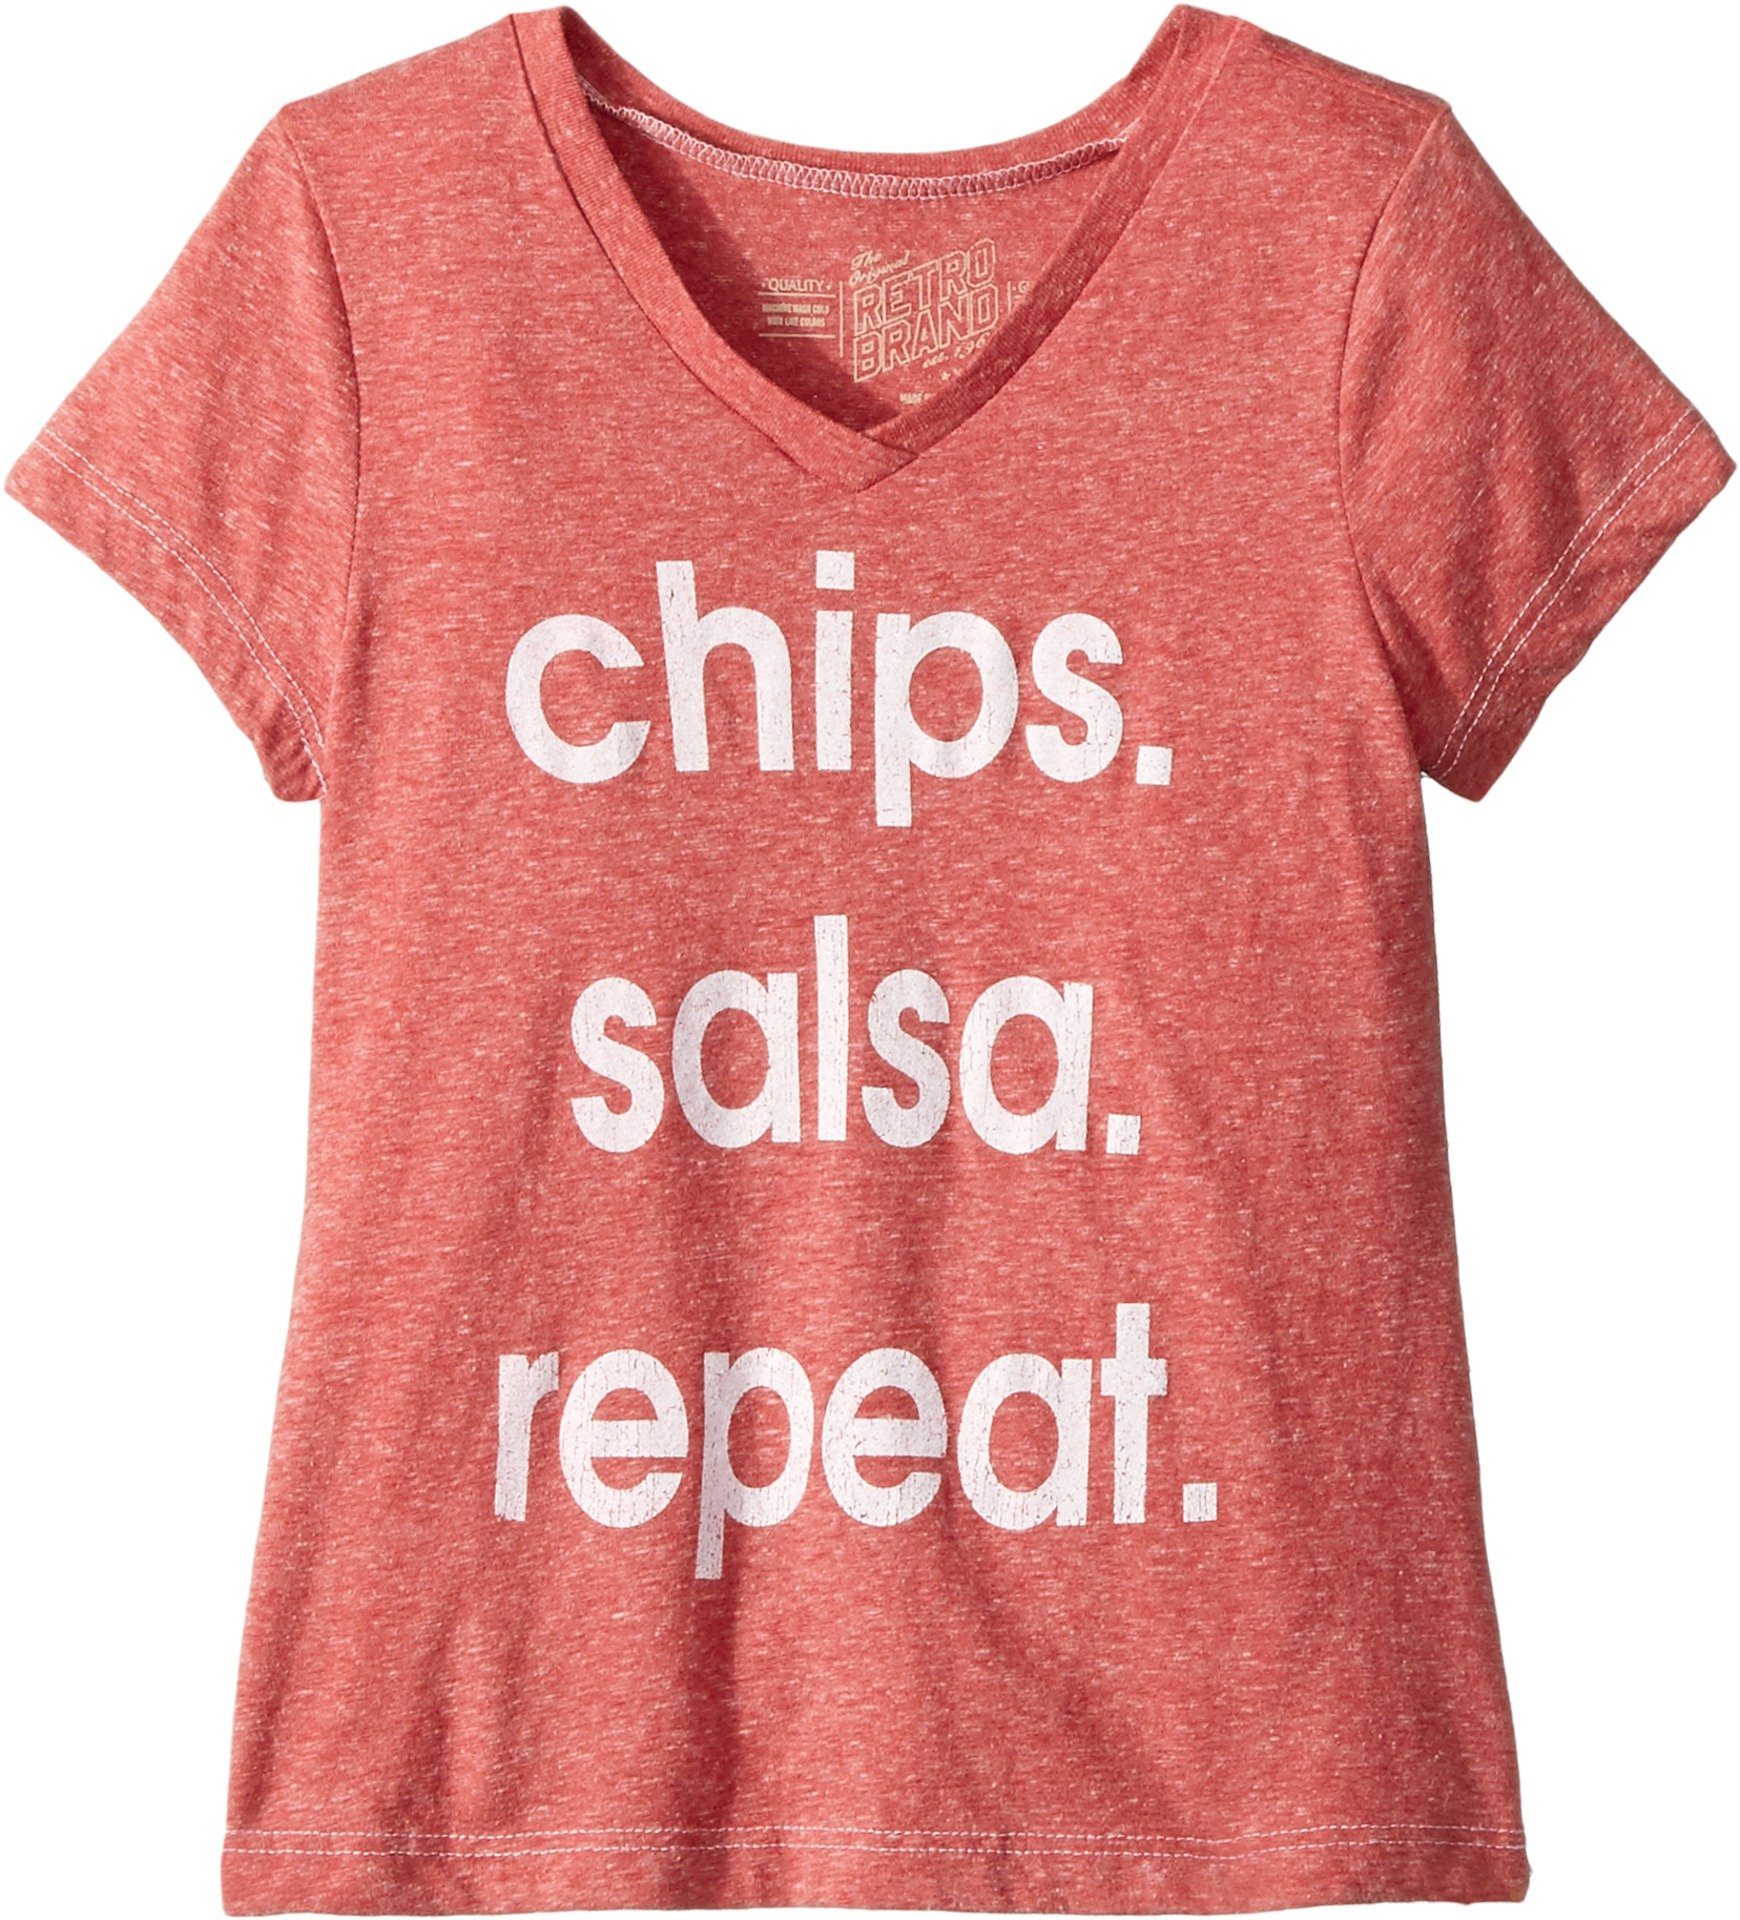 The Original Retro Brand Kids Girl's Chips Salsa repeat Tri-Blend T-Shirt (Big Kids) Streaky Red Medium by The Original Retro Brand Kids (Image #1)